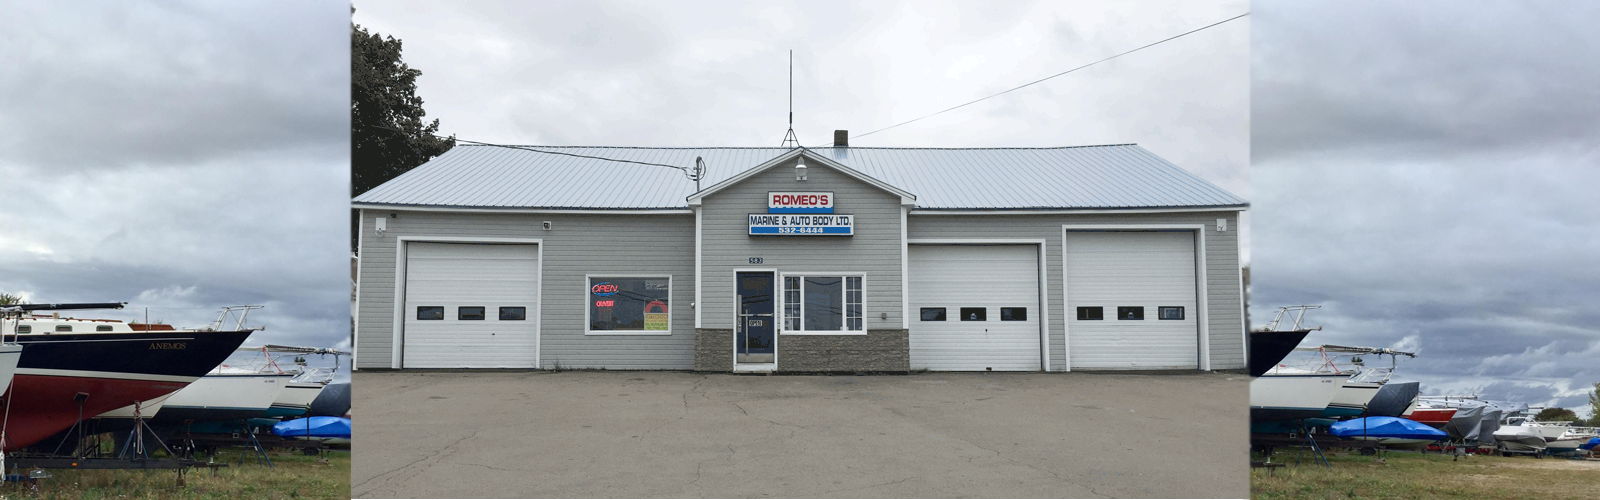 Bienvenue chez / Welcome To Romeo's Marine & Autobody Ltd.